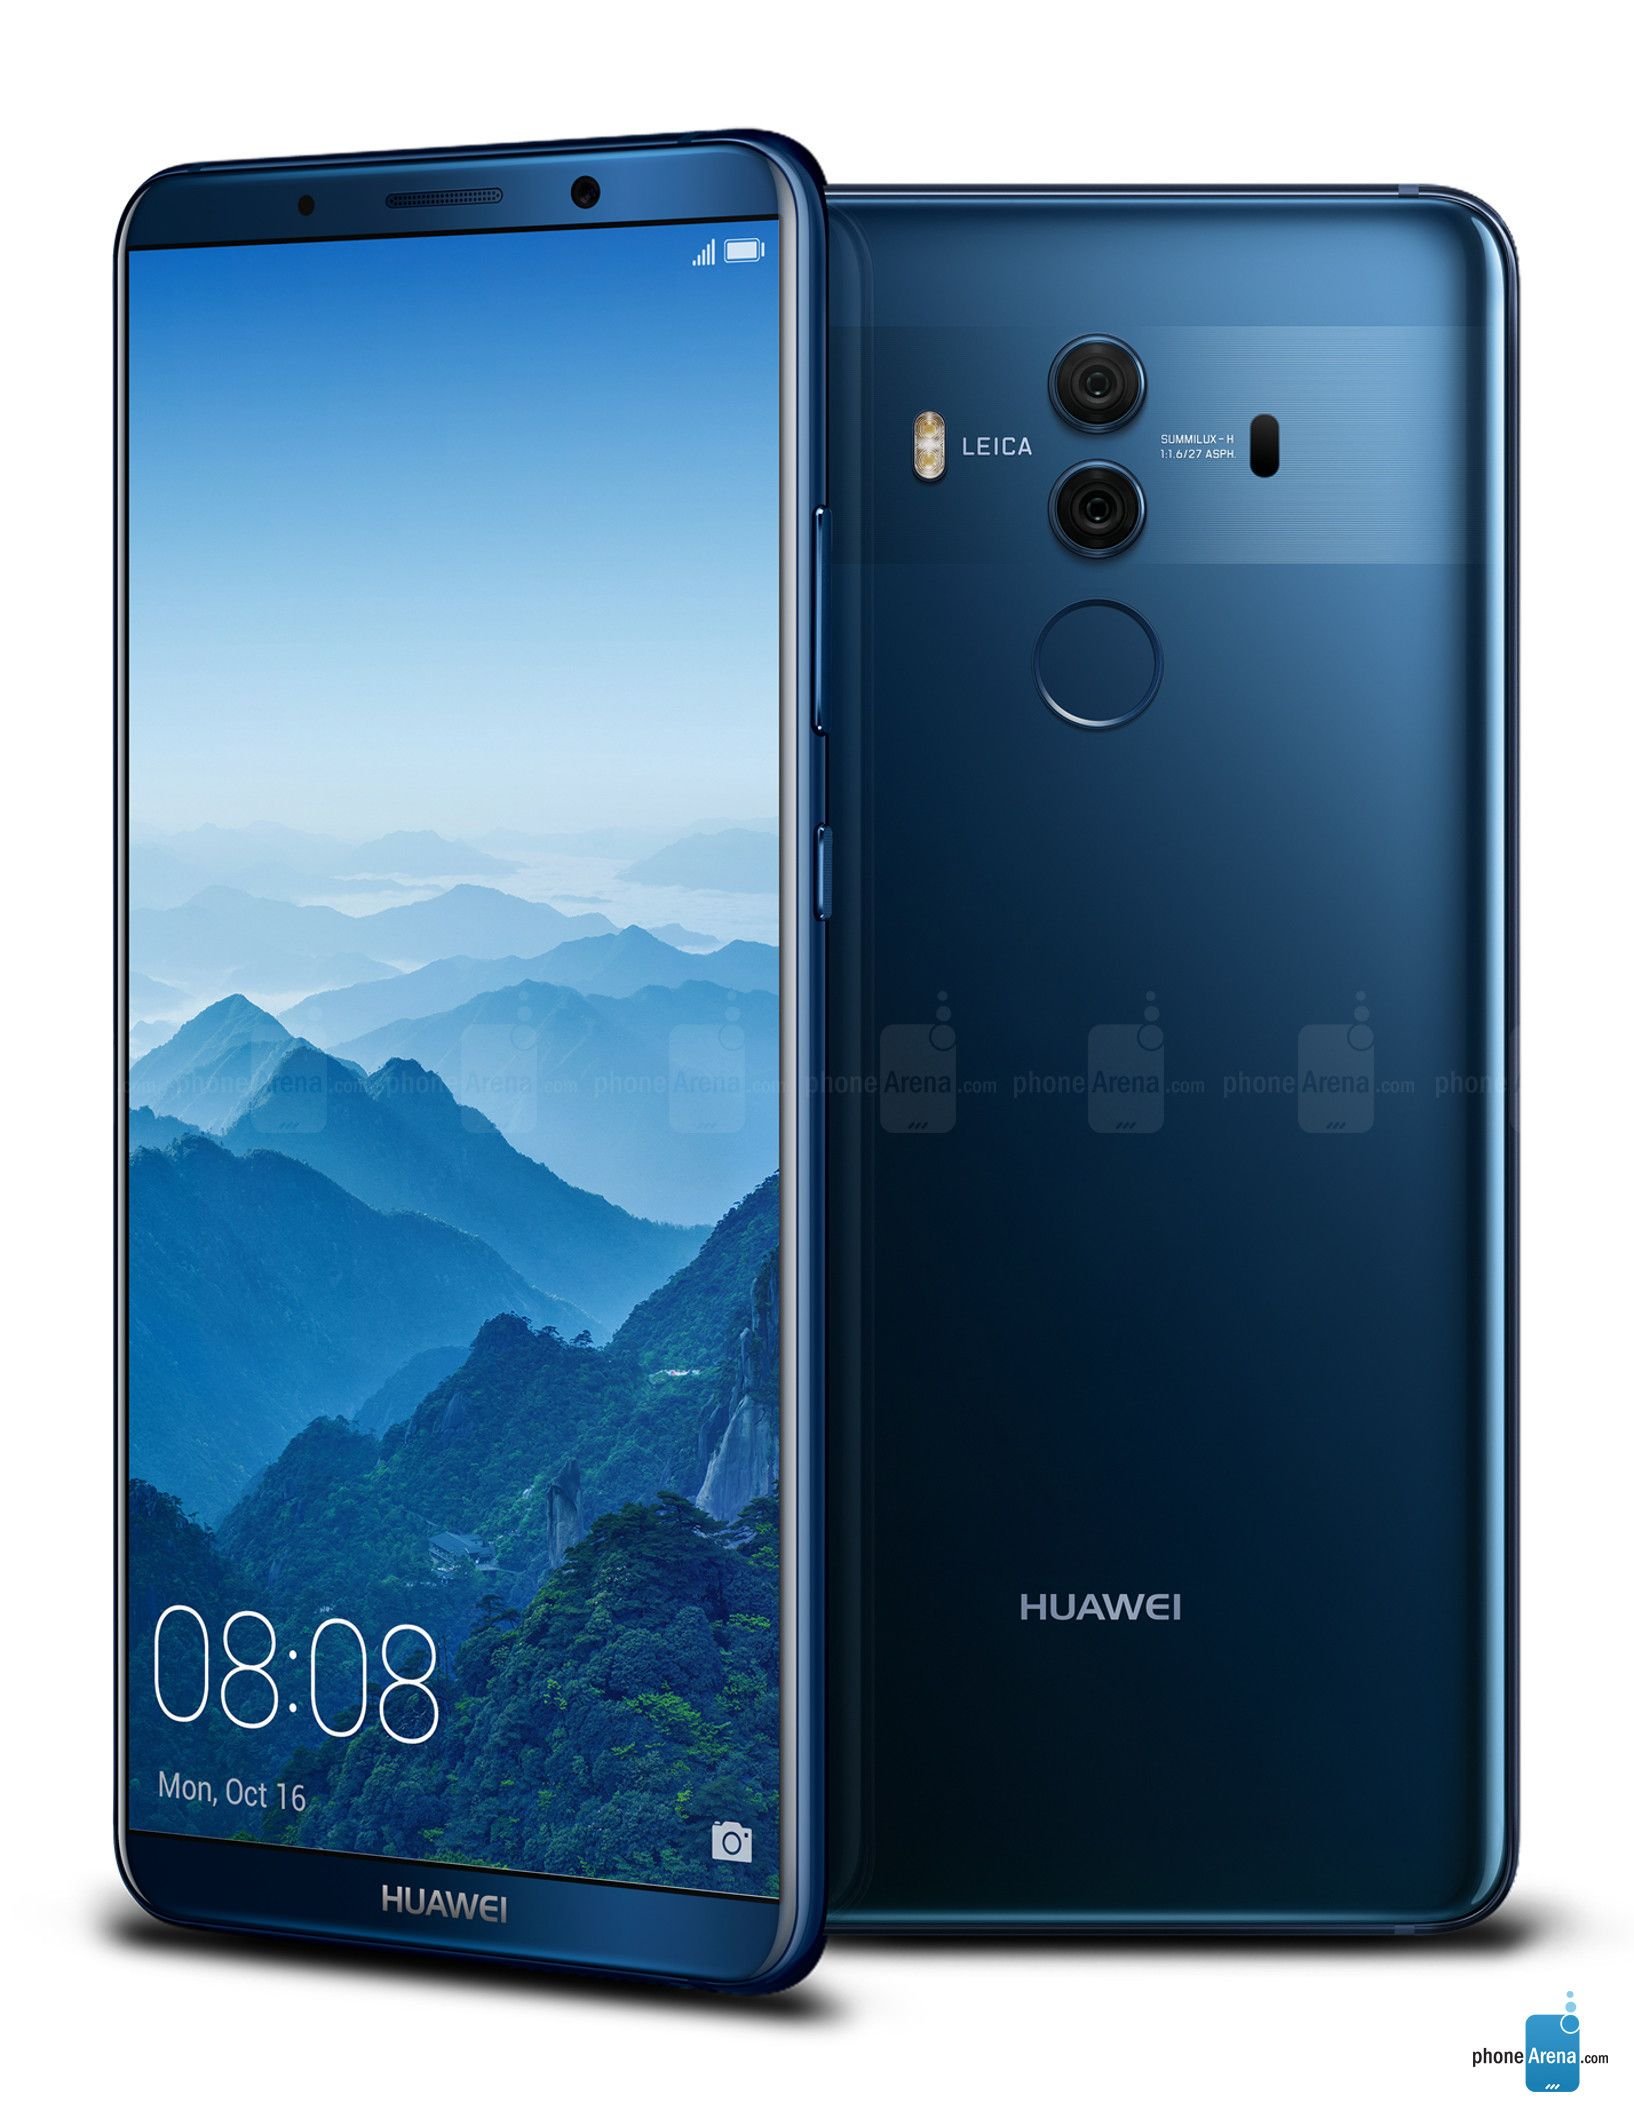 Huawei Mate 10 Pro Photos With Images Huawei Huawei Mate